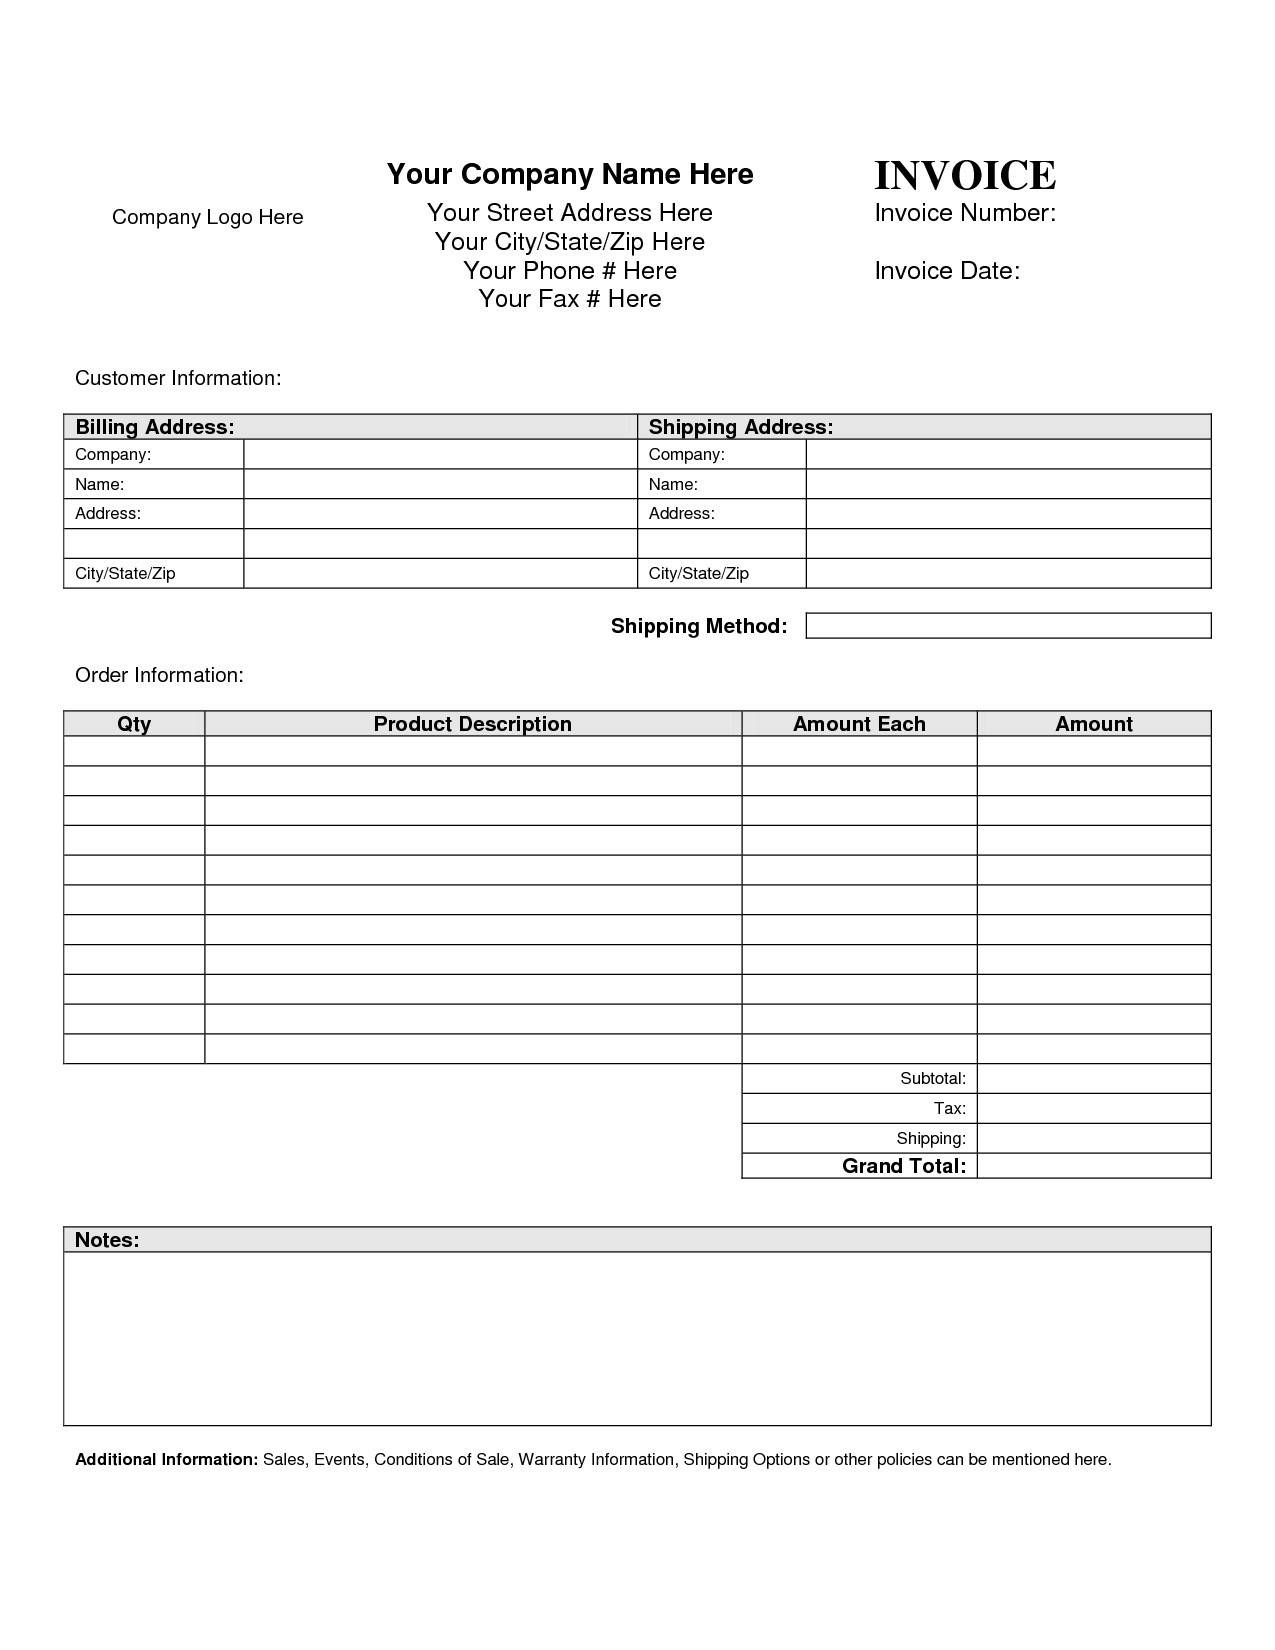 Reimbursement Invoice Template